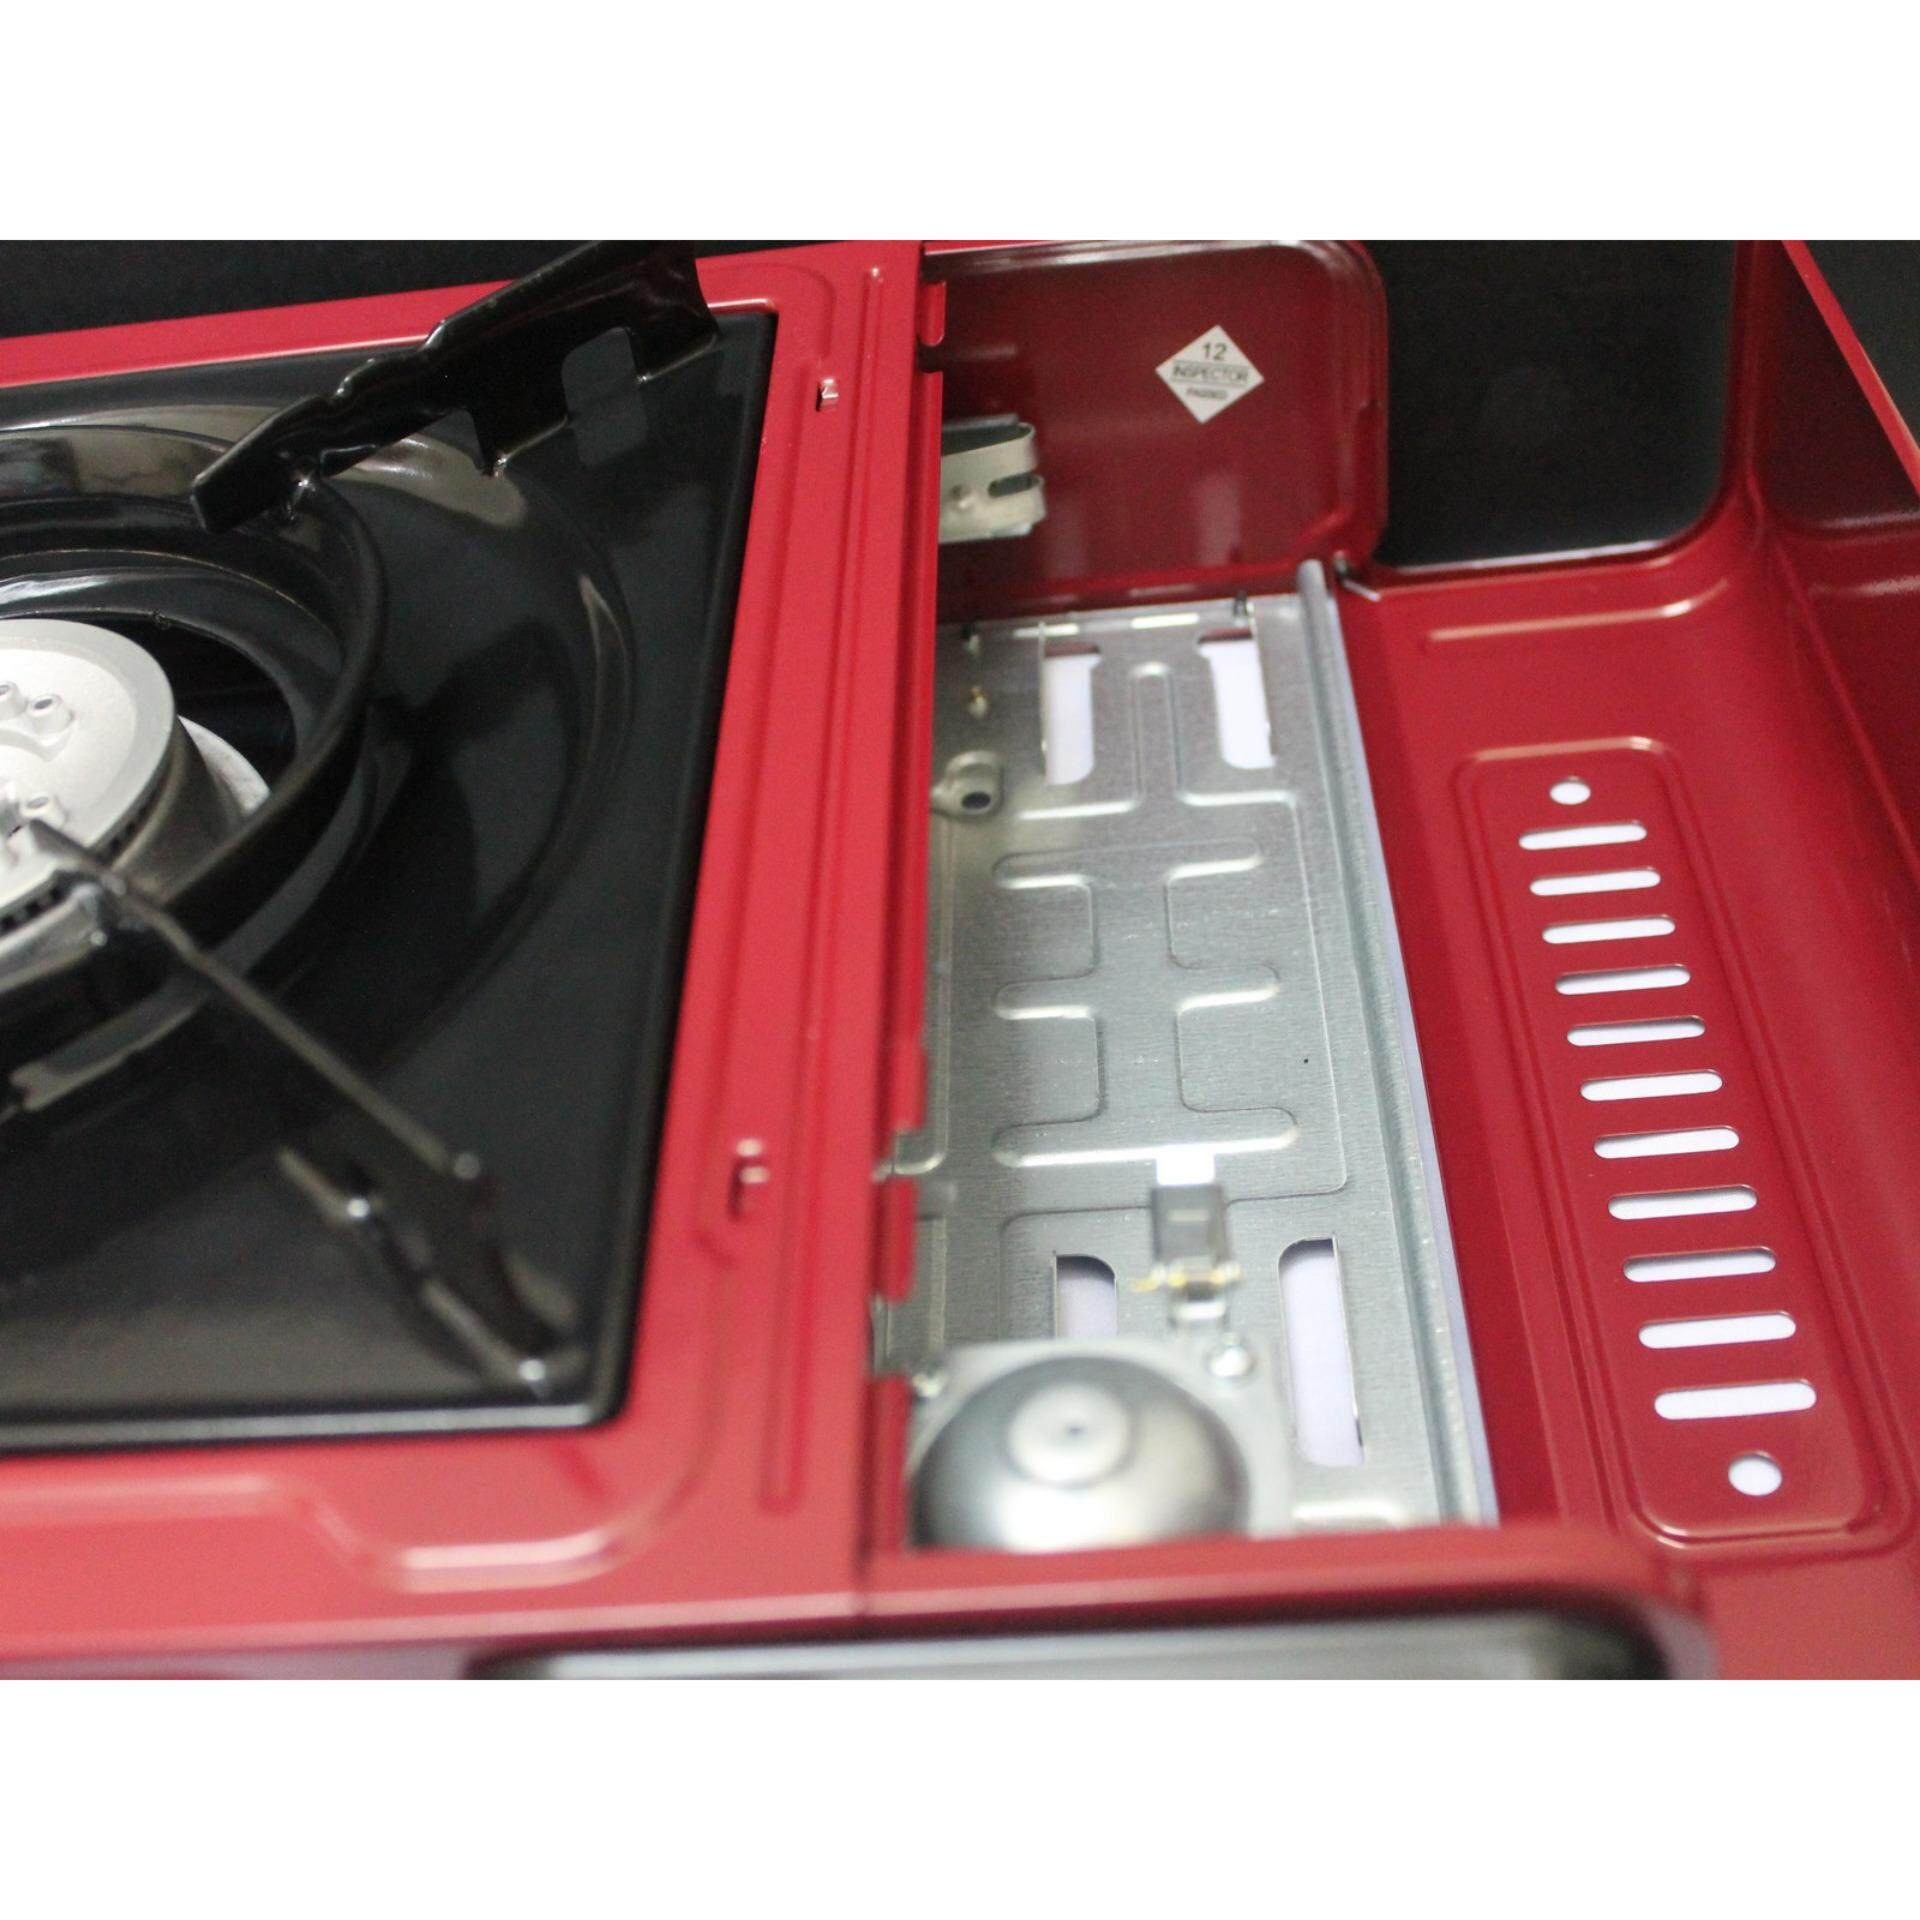 1 pc Kitchen Portable Gas Stove FREE Butang Gas (Red)